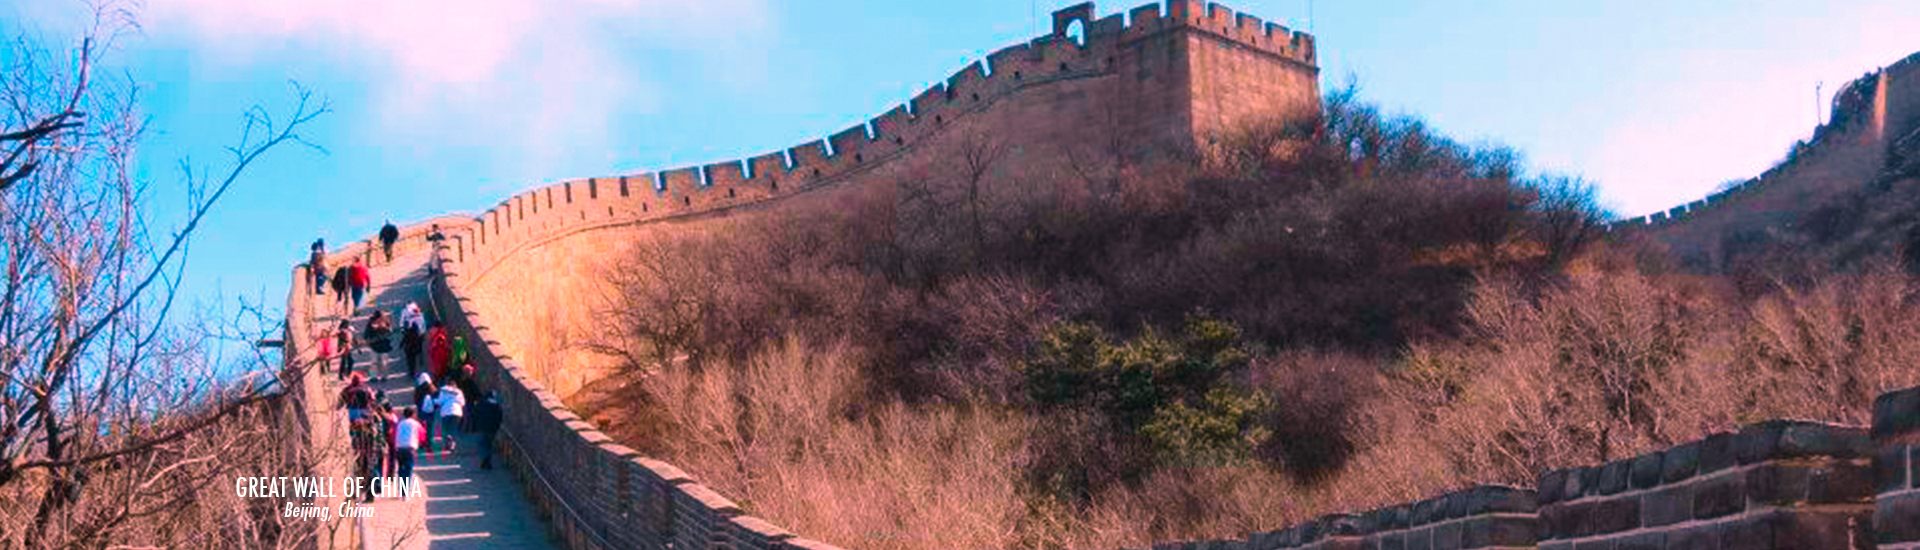 Great Wall of China - Path way - Beijing China - time travel blonde